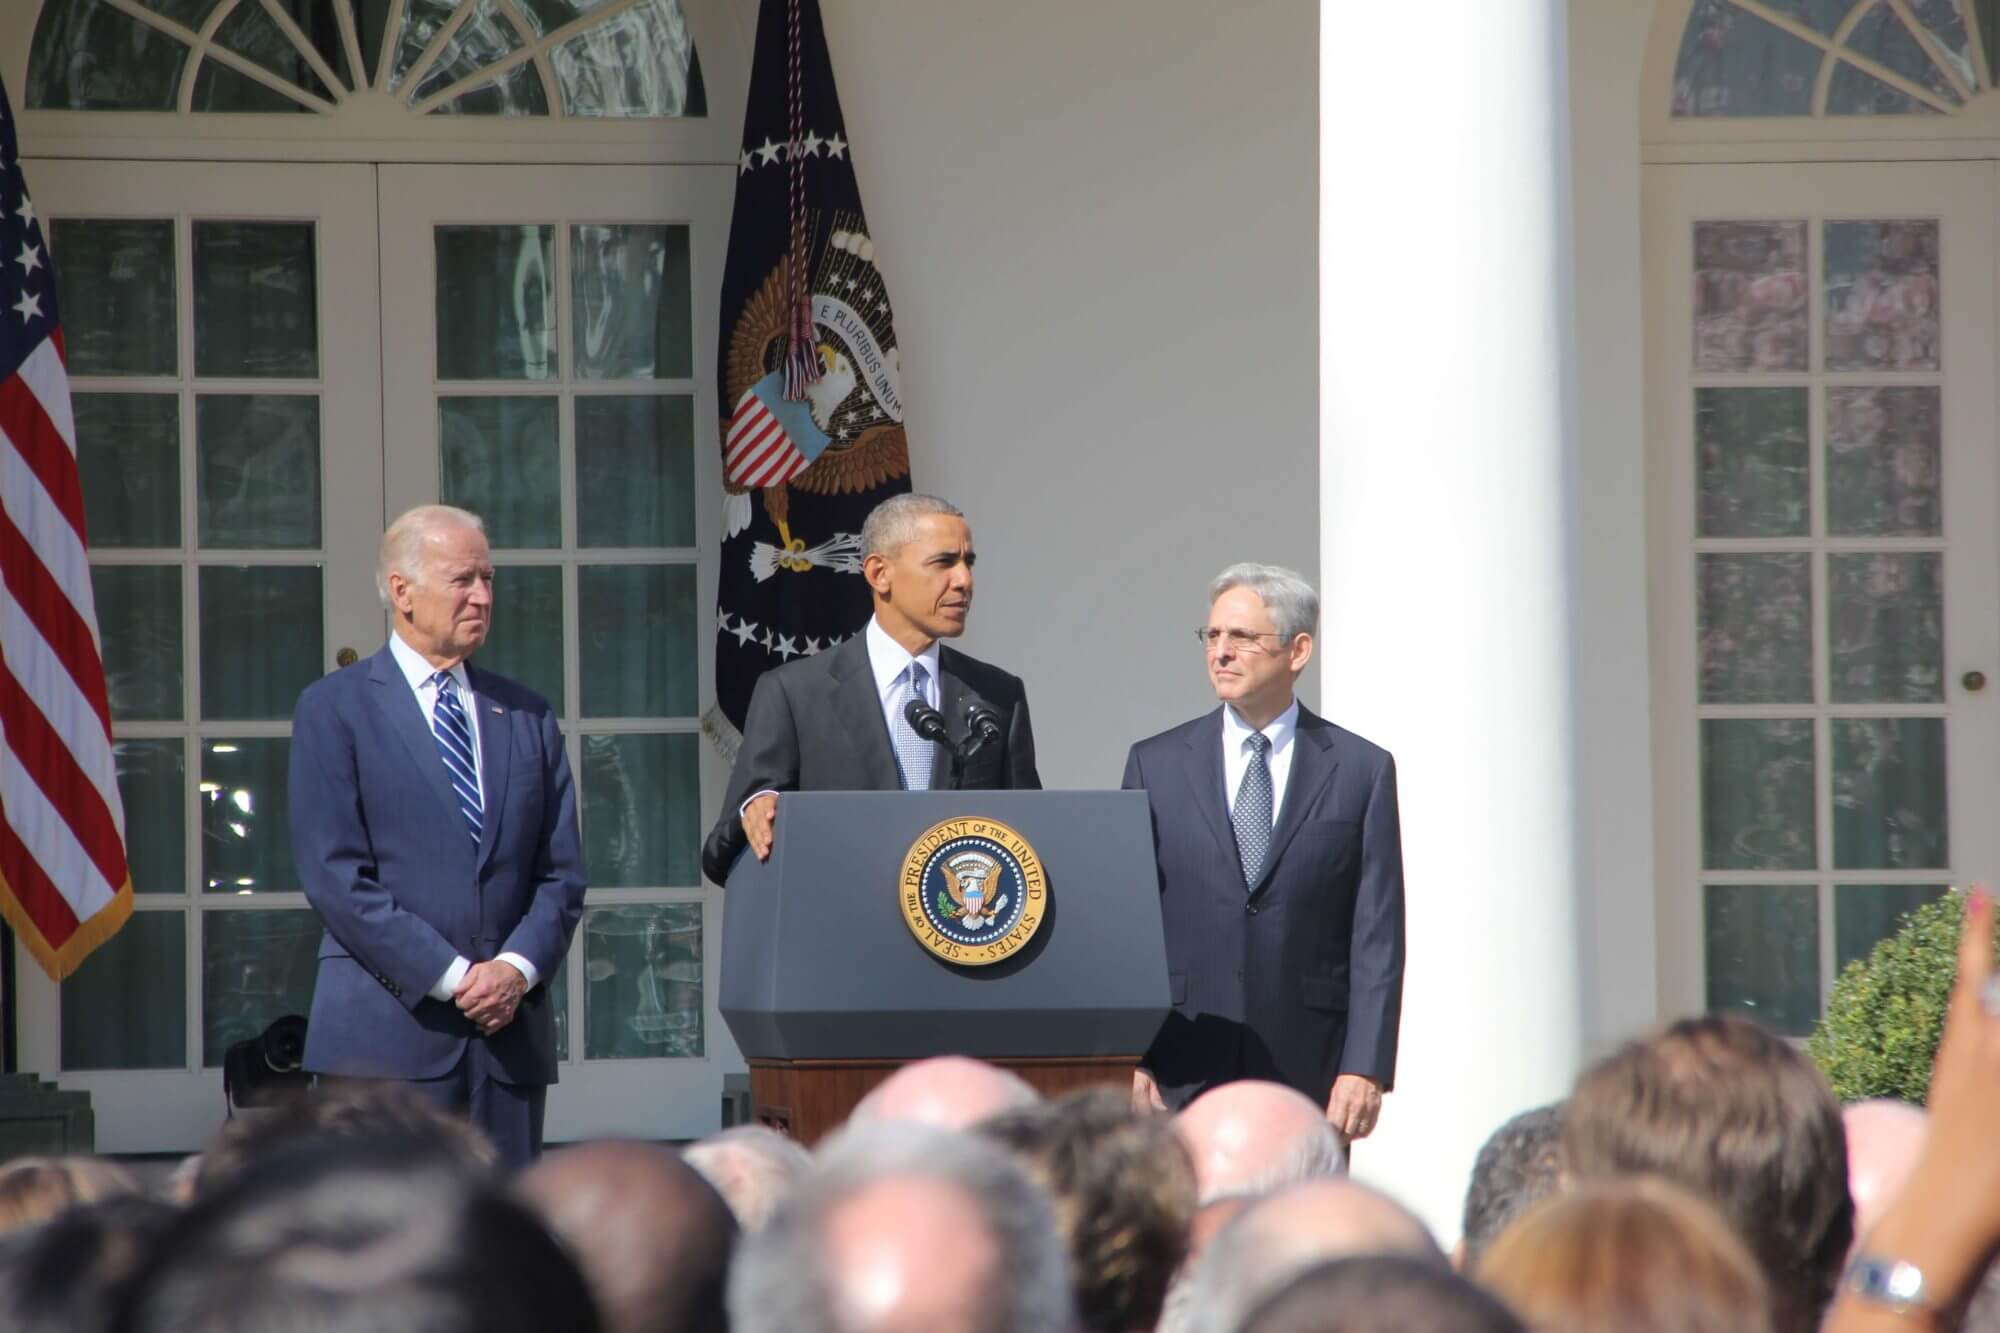 President Obama nominates Judge Merrick Garland for Supreme Court